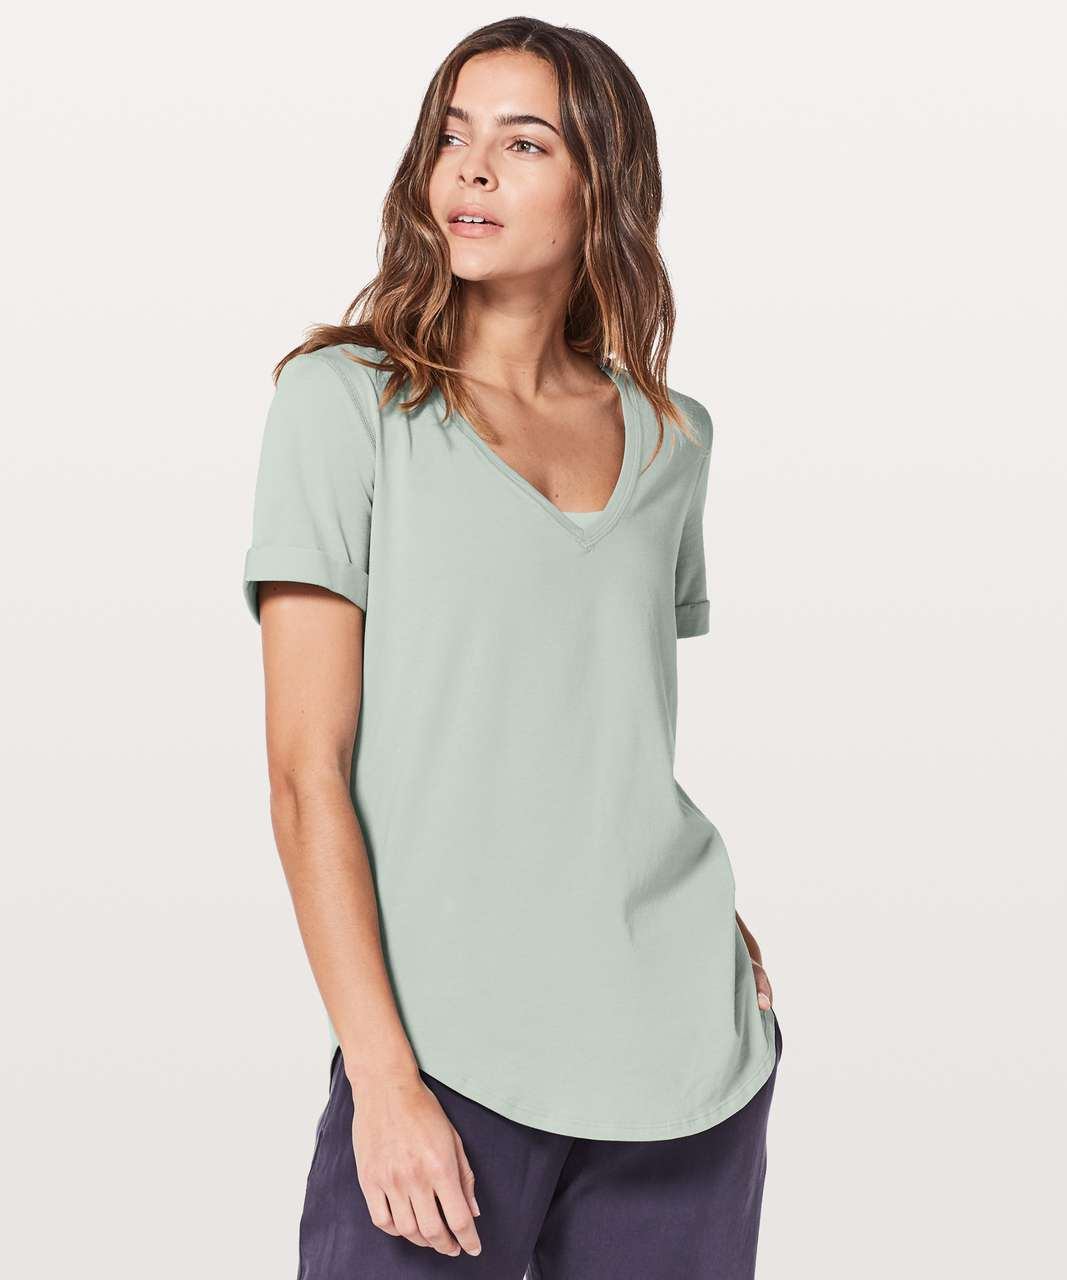 Lululemon Love Tee II - Misty Moss